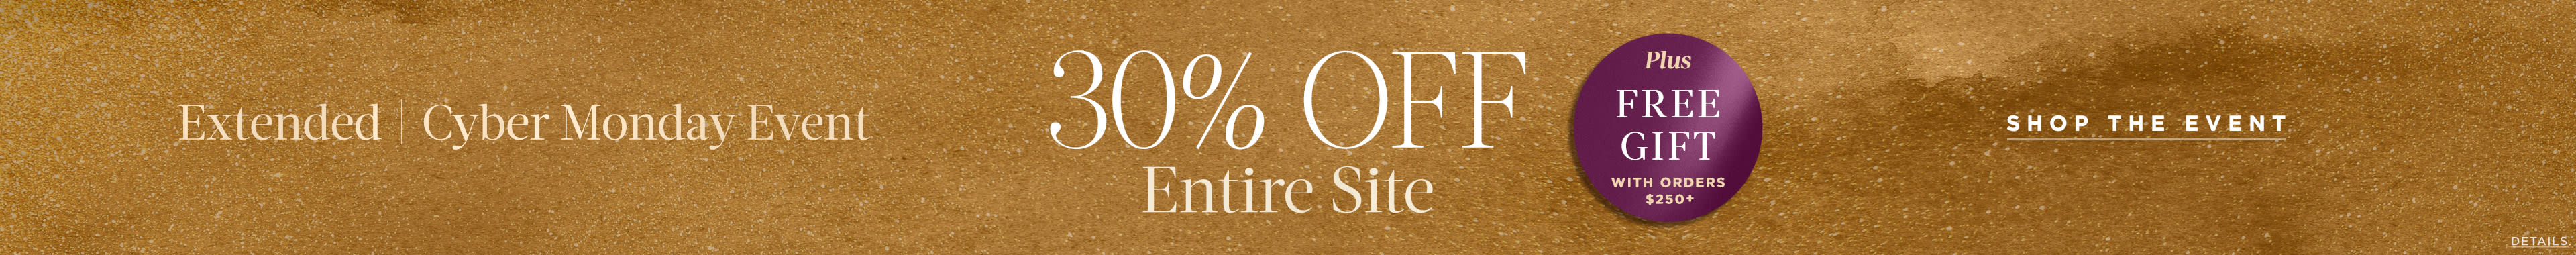 30% off entire site. Cyber Monday exclusive.